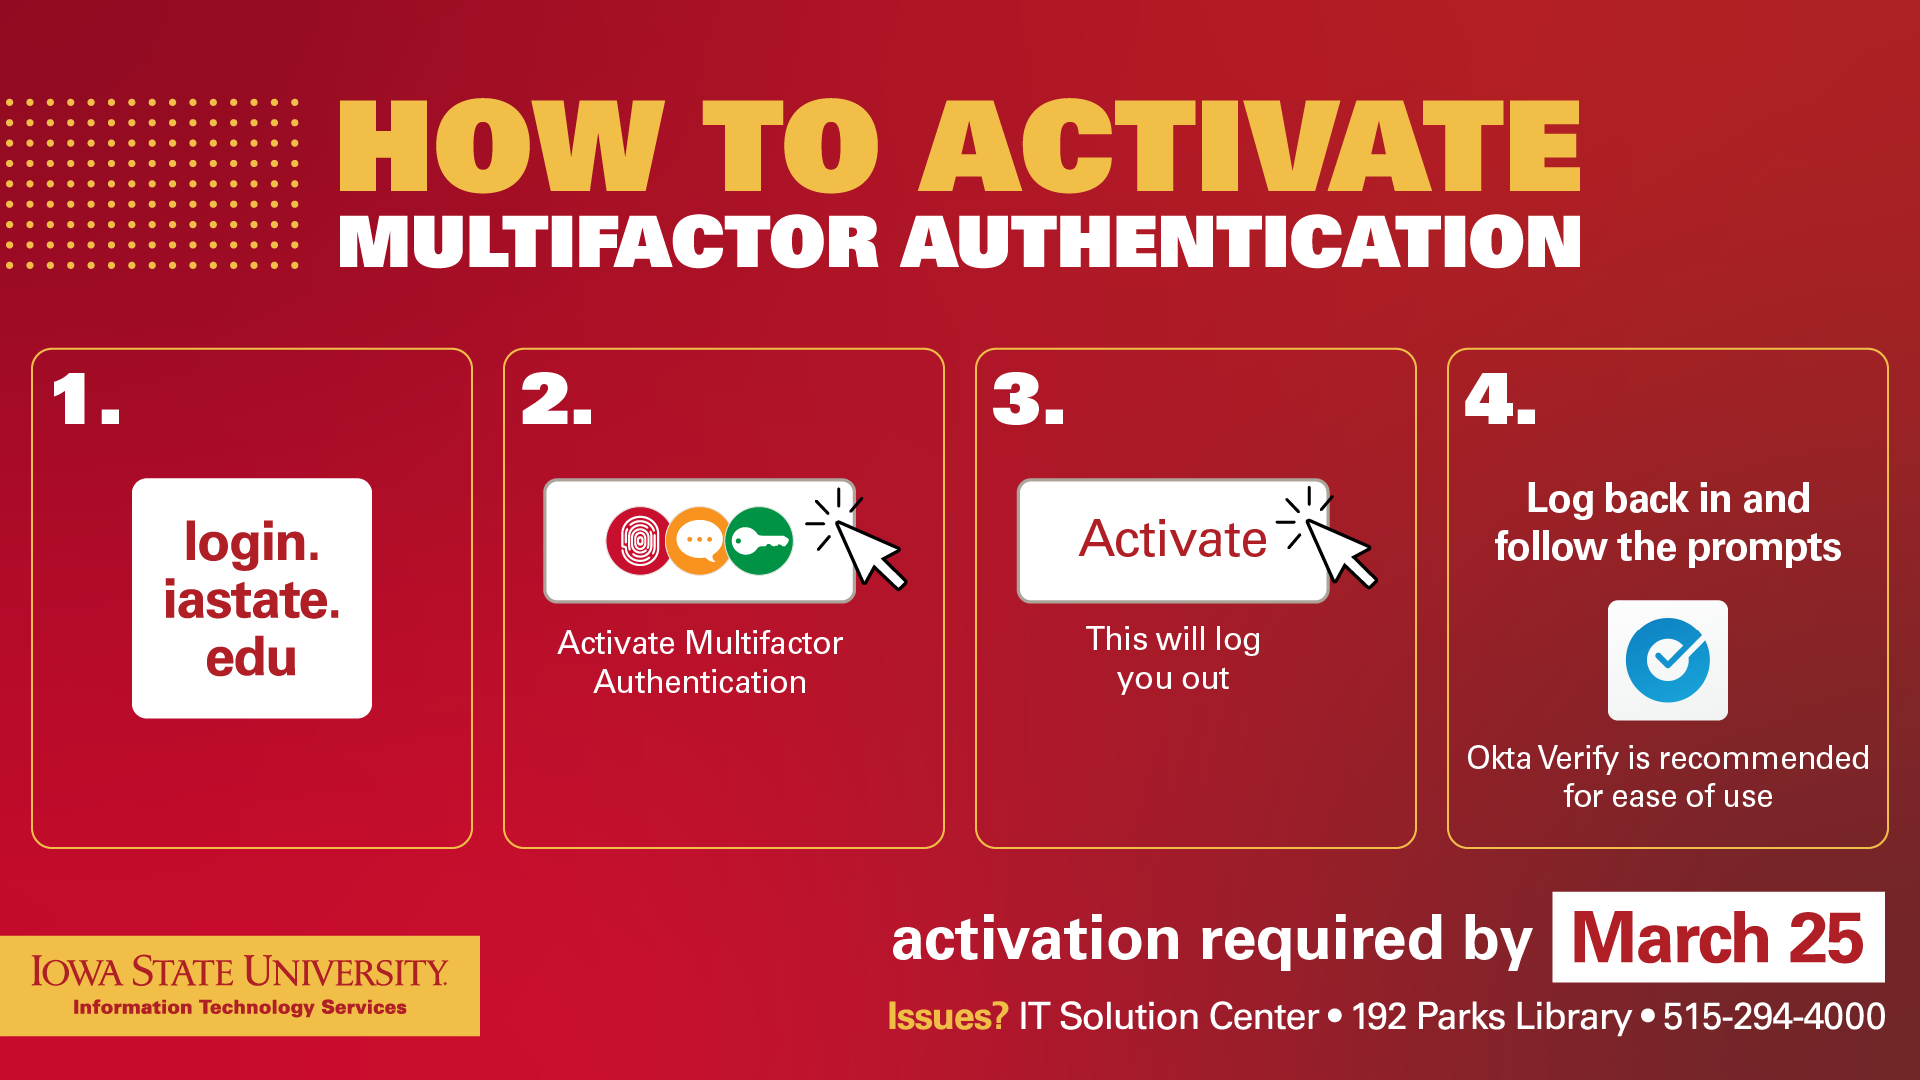 multifactor authentication graphic